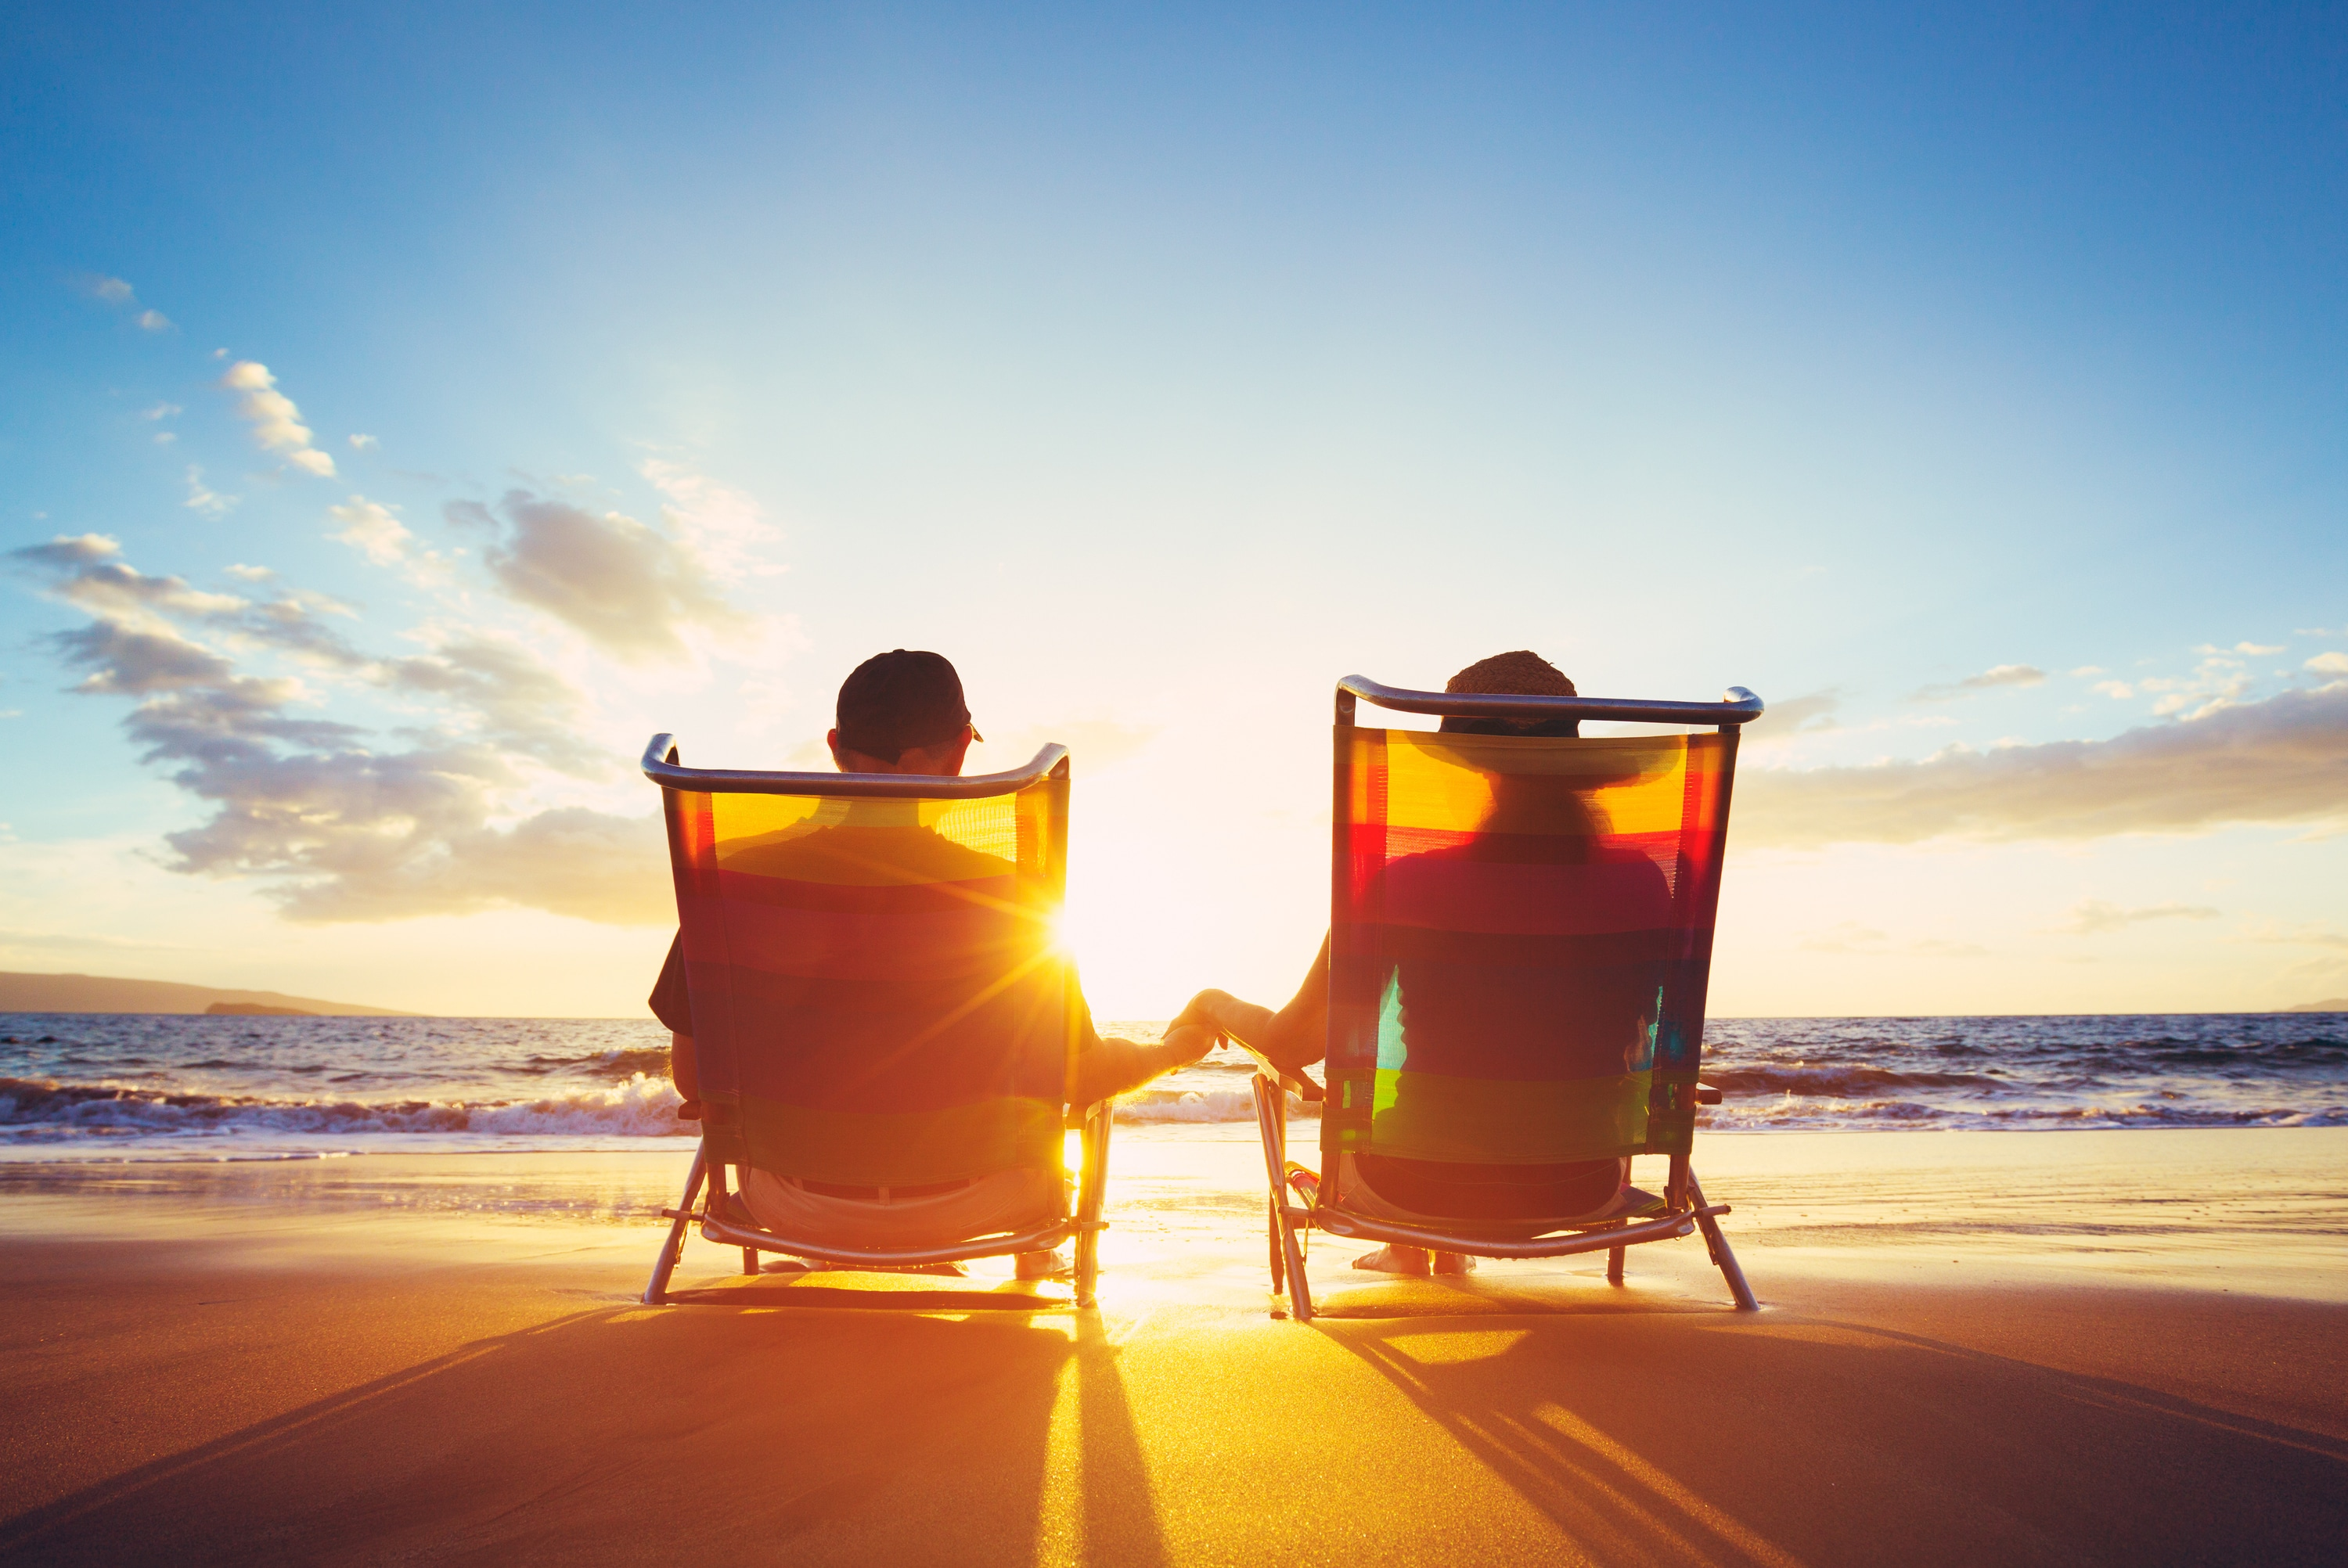 Early Retirement Extreme: Can You Really Retire in 5 Years?